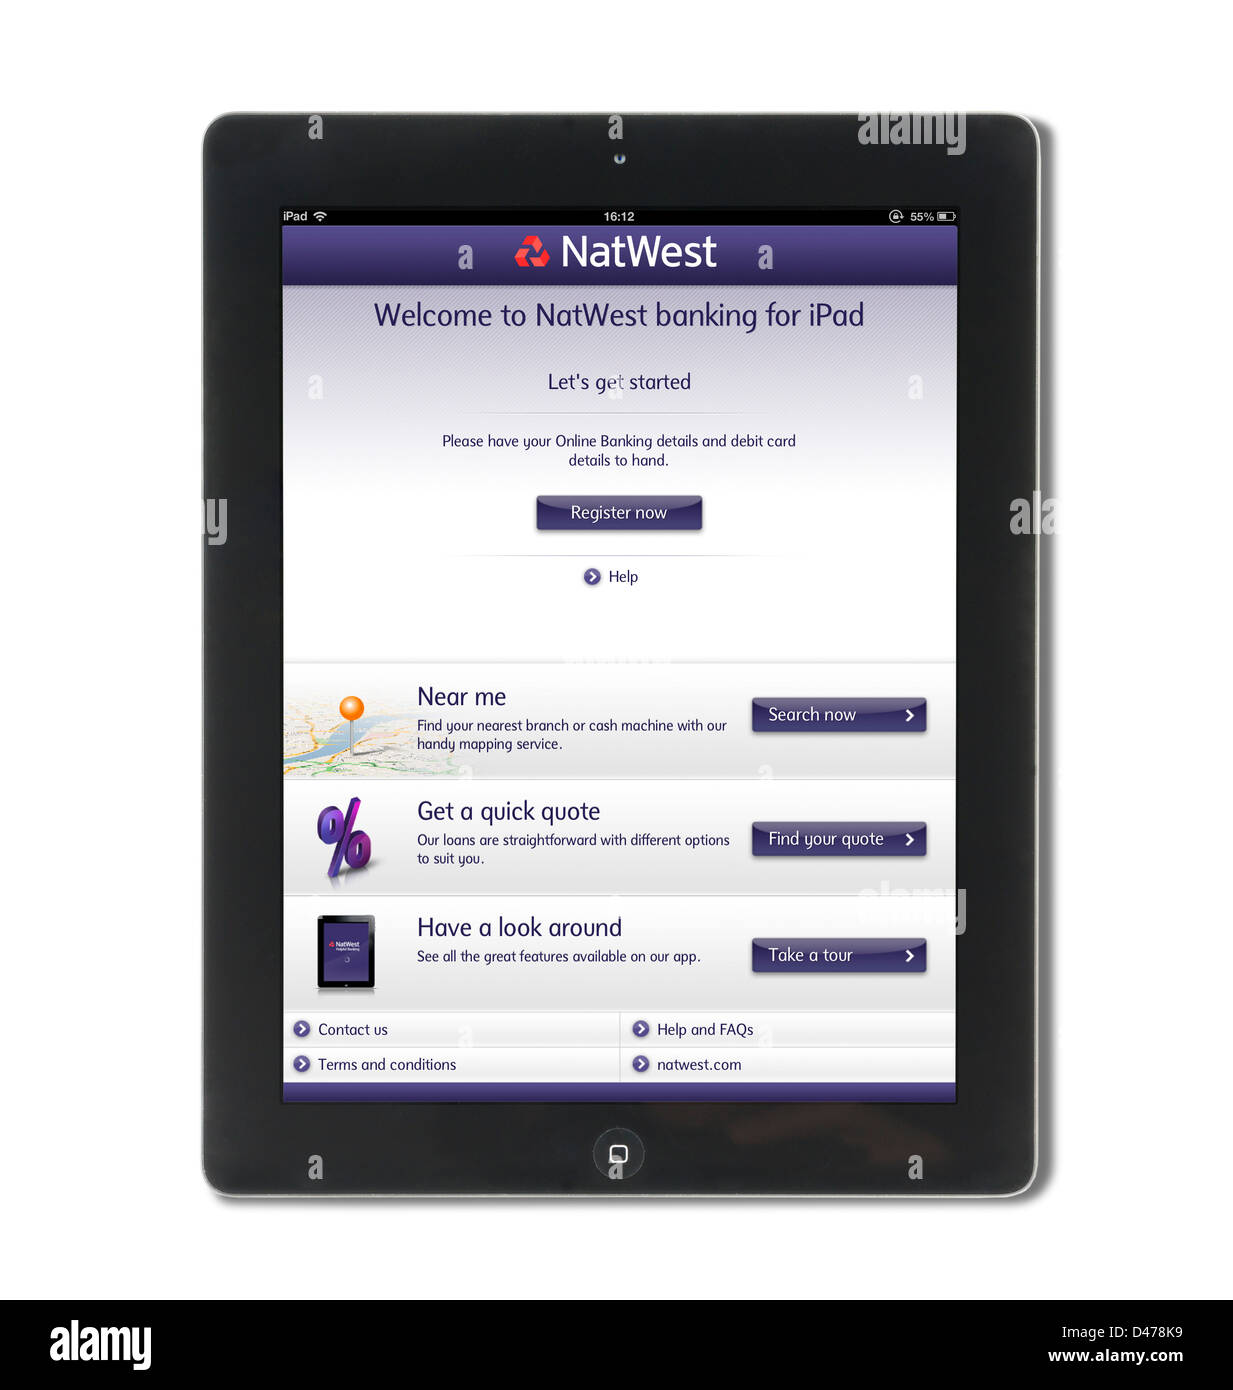 Registering for online banking with NatWest bank on an iPad 4, UK - Stock Image